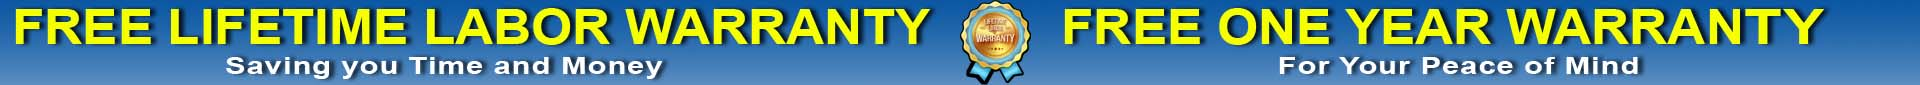 Free Lifetime Warranty and Free One Year Warranty